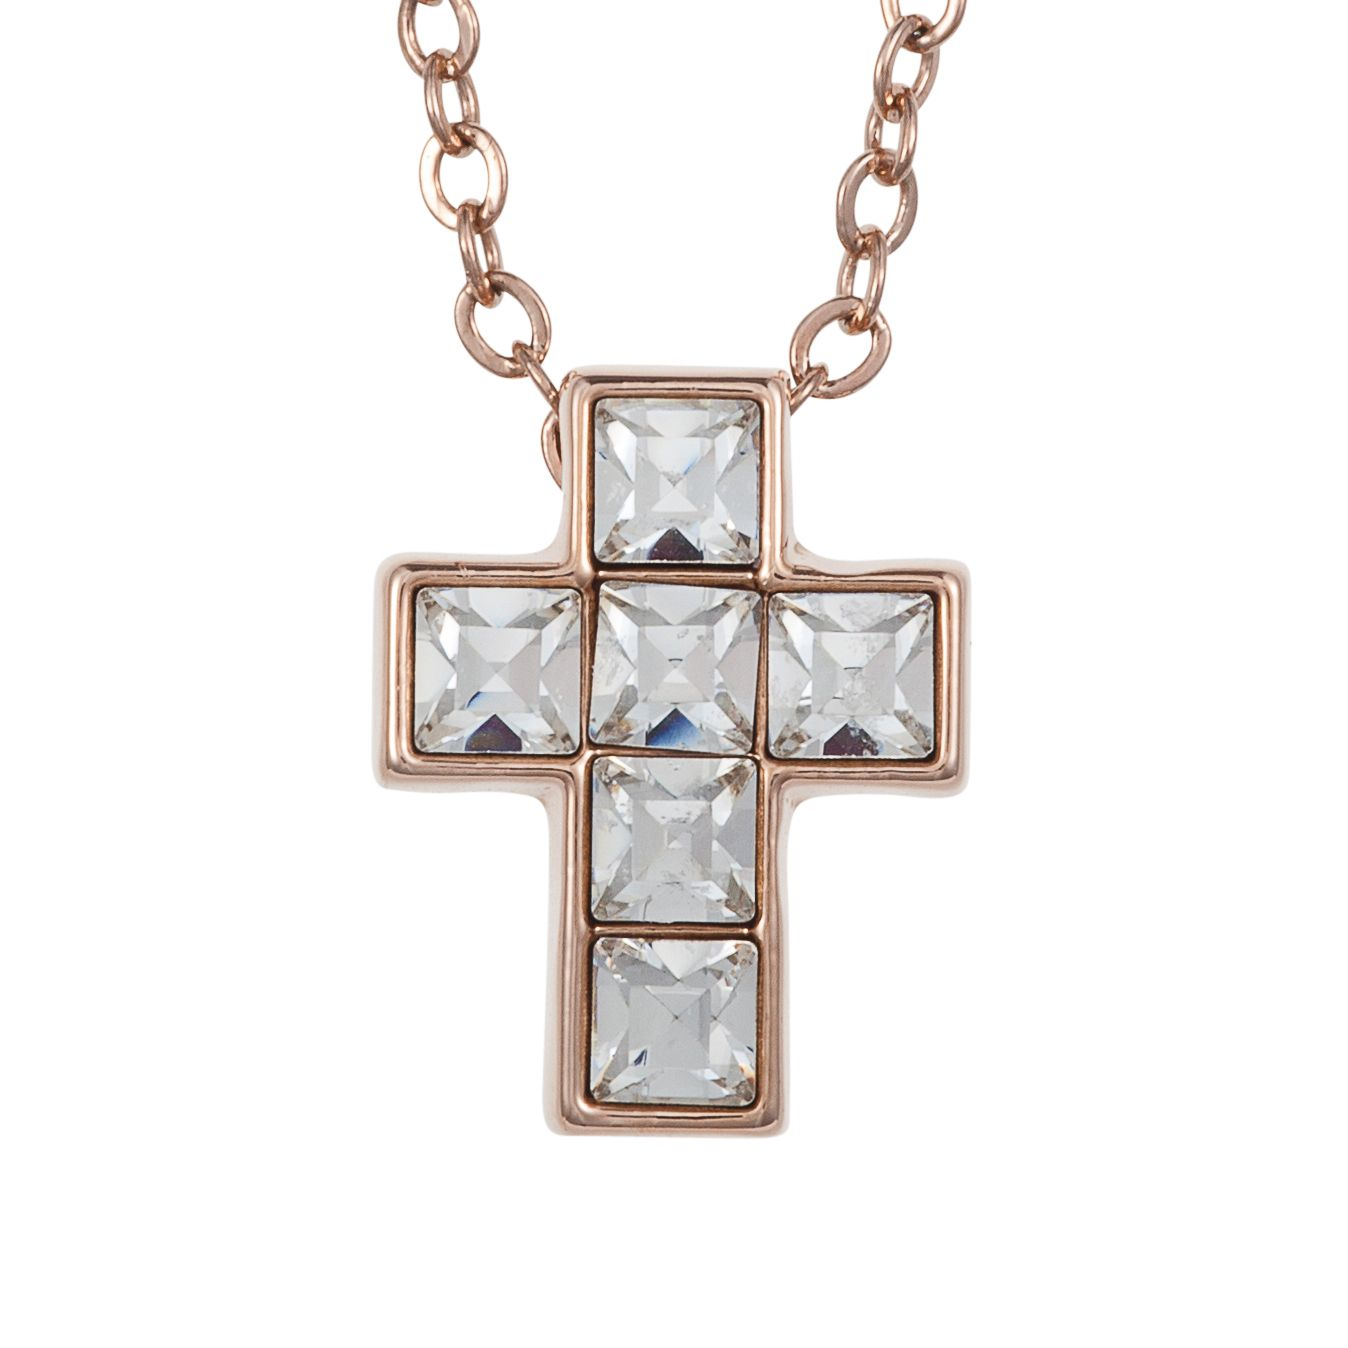 18ct rose gold cross pendant